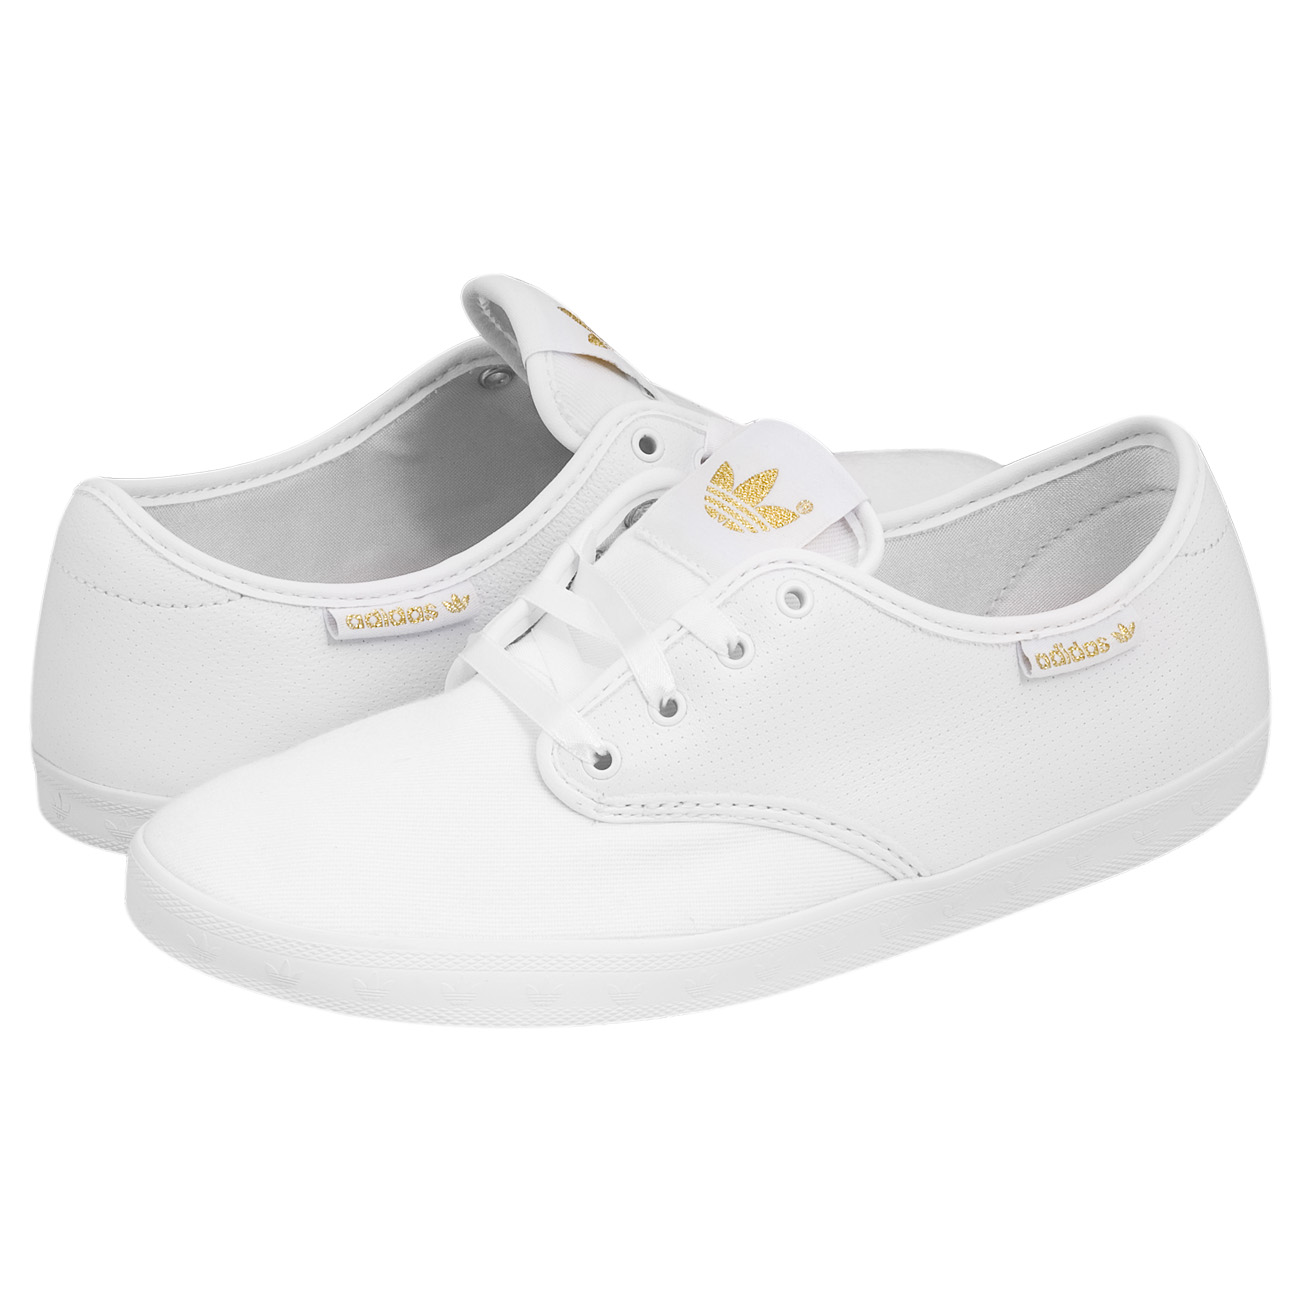 Adidas Adria Ps Women Shoe WhiteWhiteMetalic Gold G17797